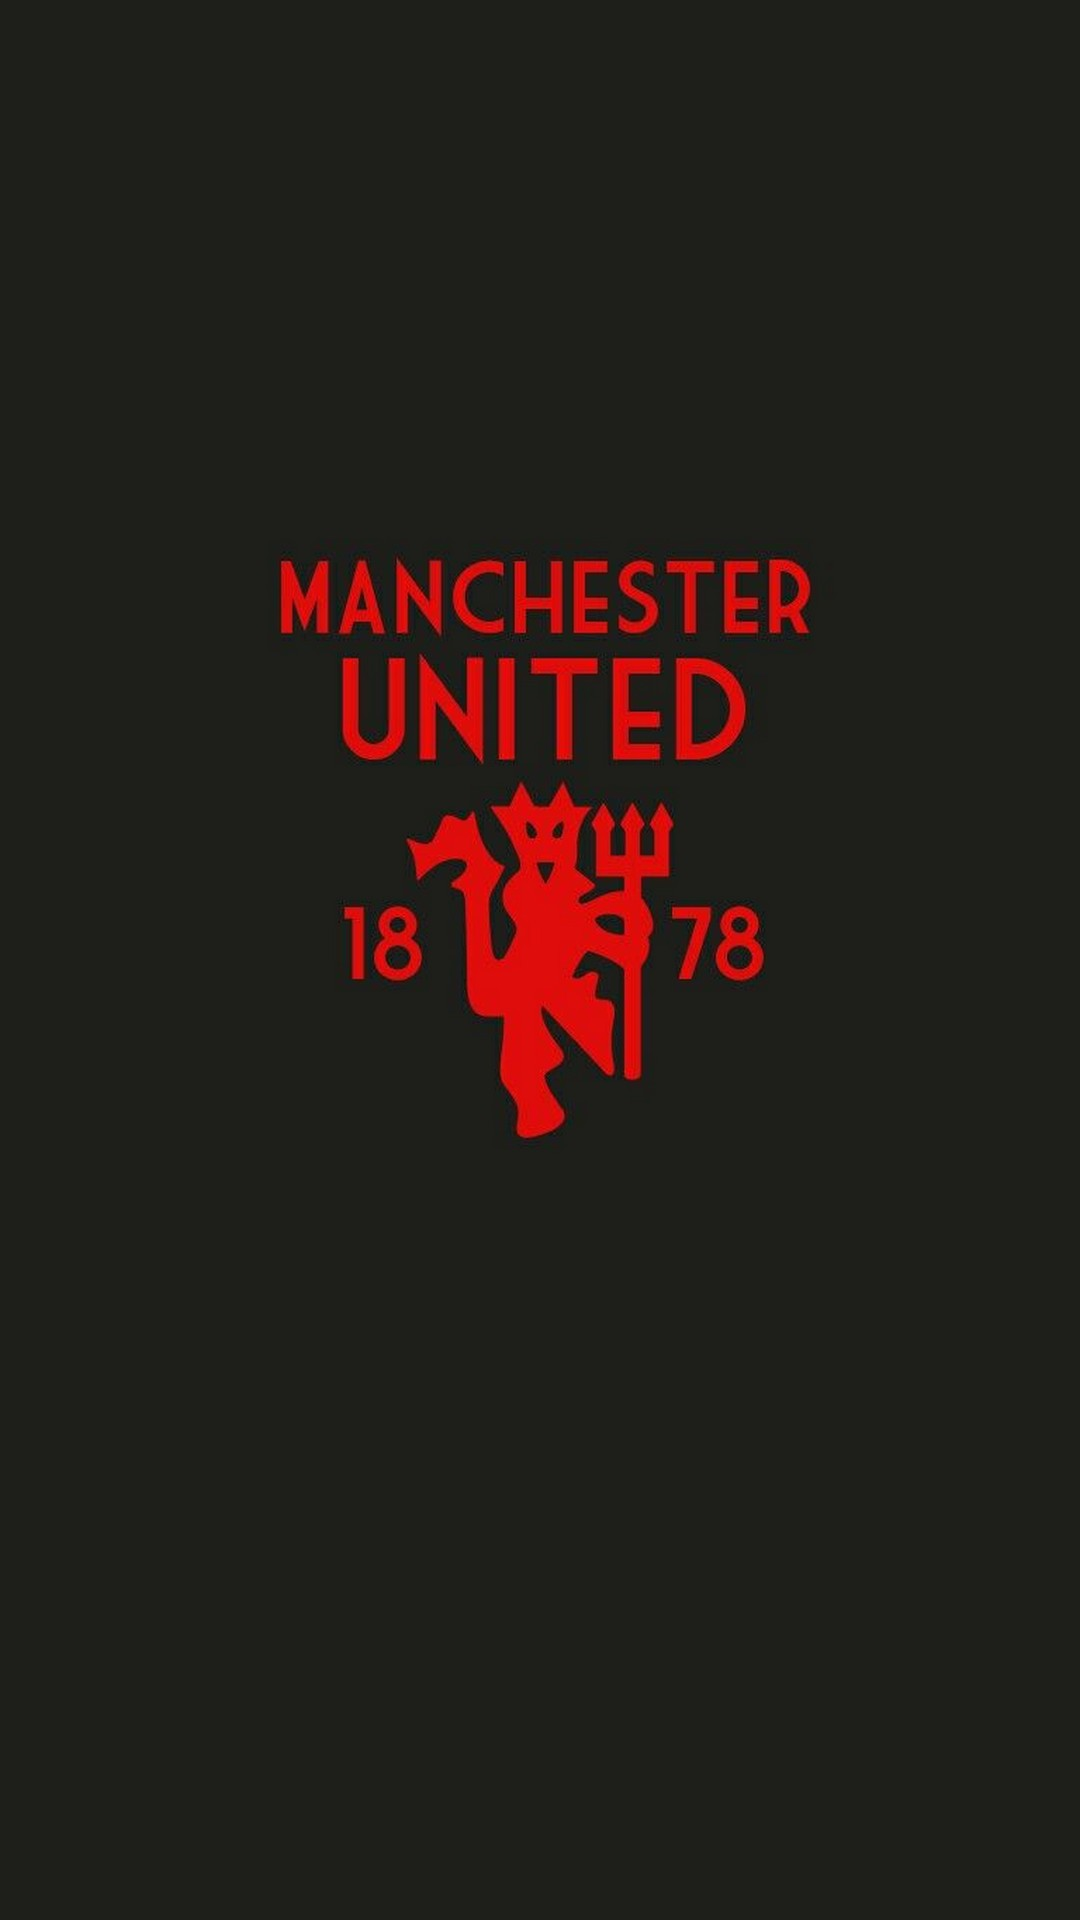 Manchester United Wallpaper For Mobile With High Resolution Manchester United F C 1080x1920 Wallpaper Teahub Io